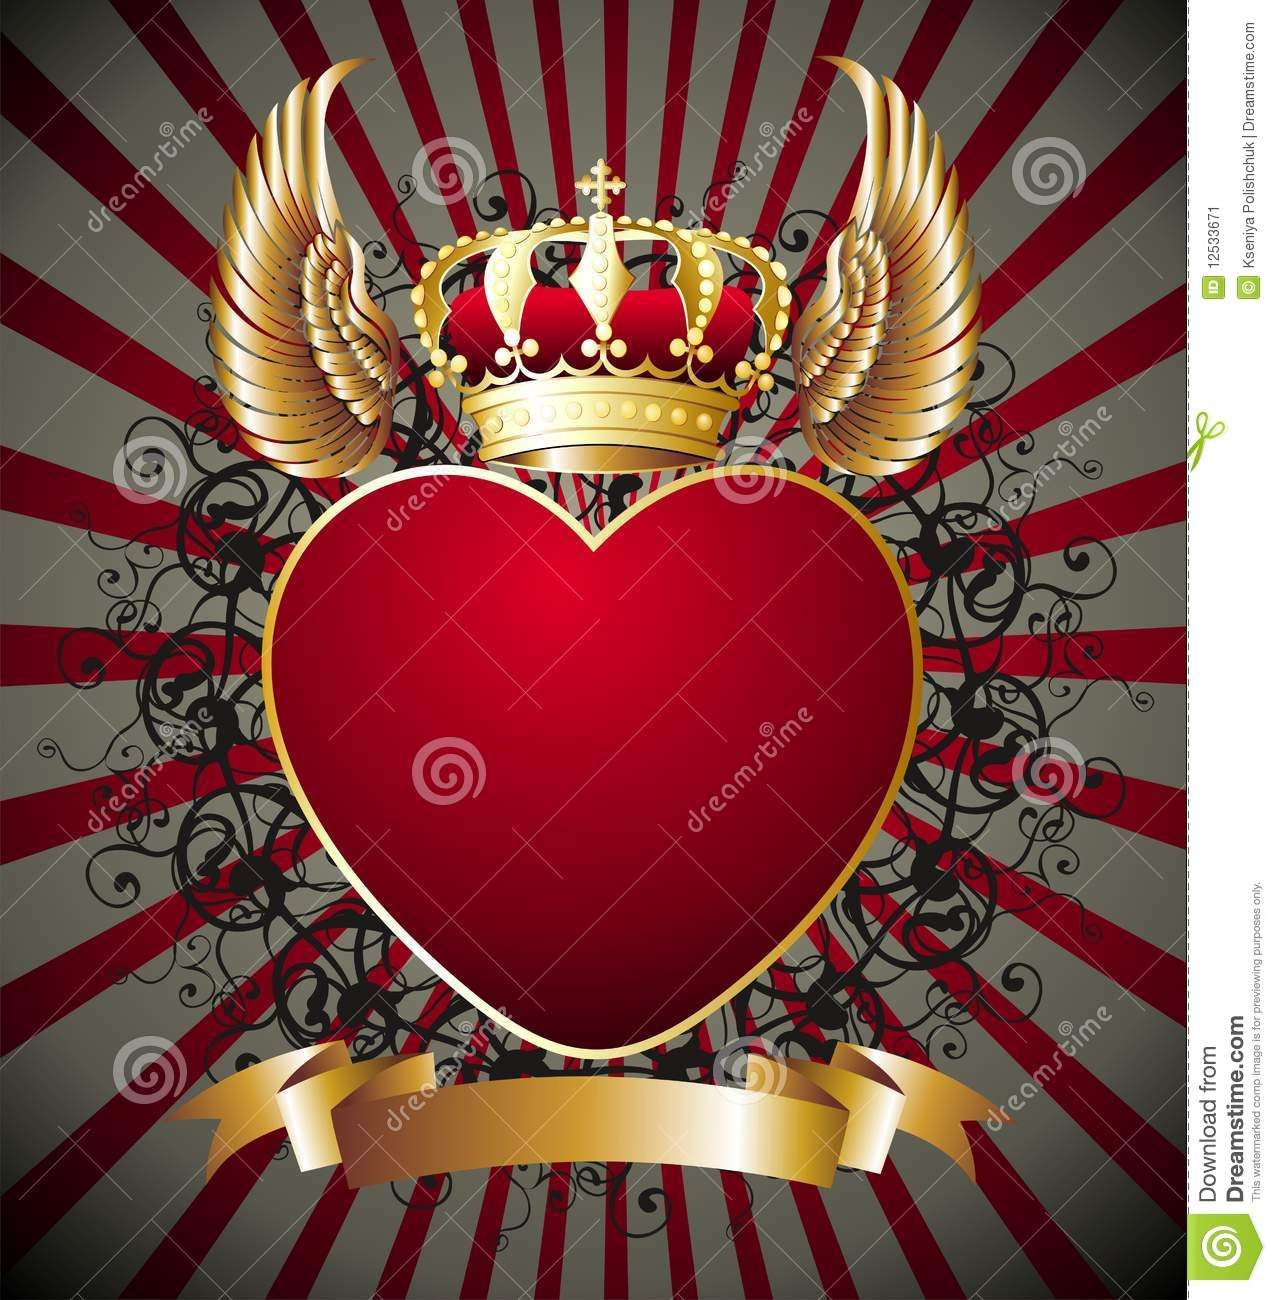 Background With Heart Wings And Gold Royal Crown Stock